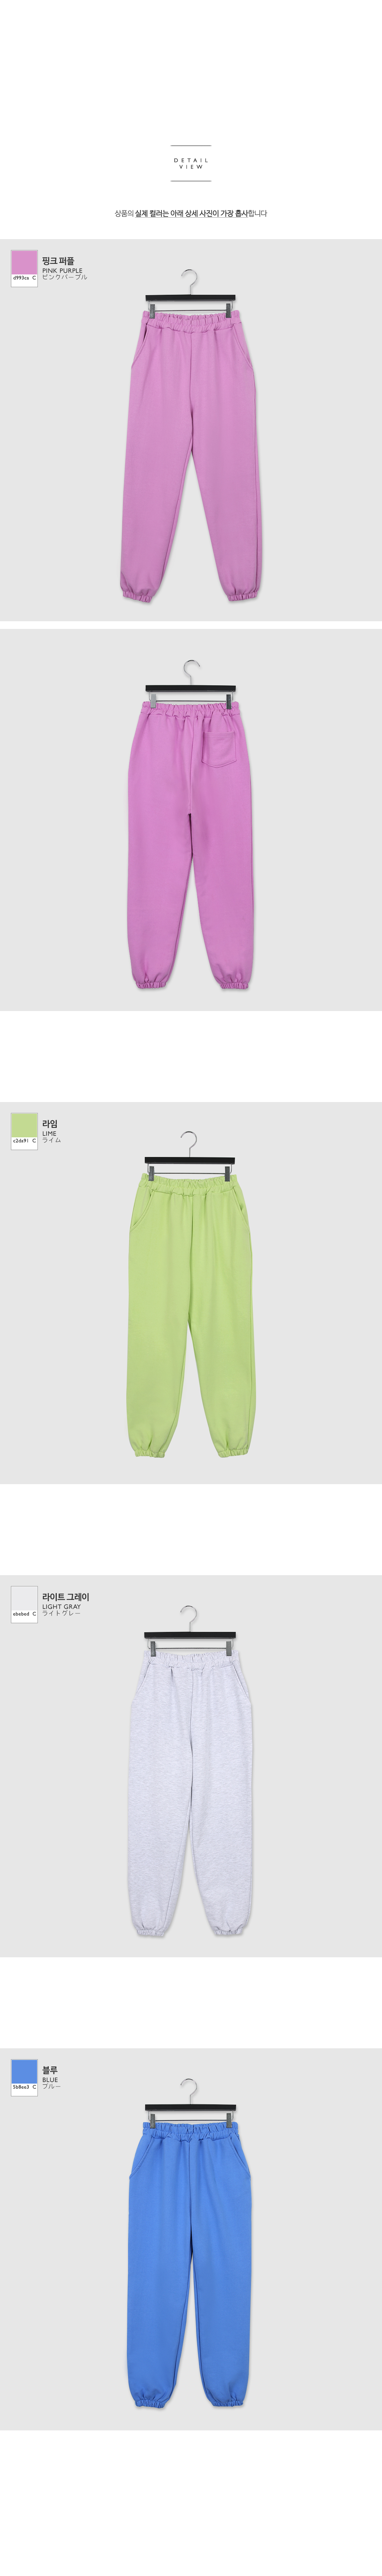 We can color jogger pants